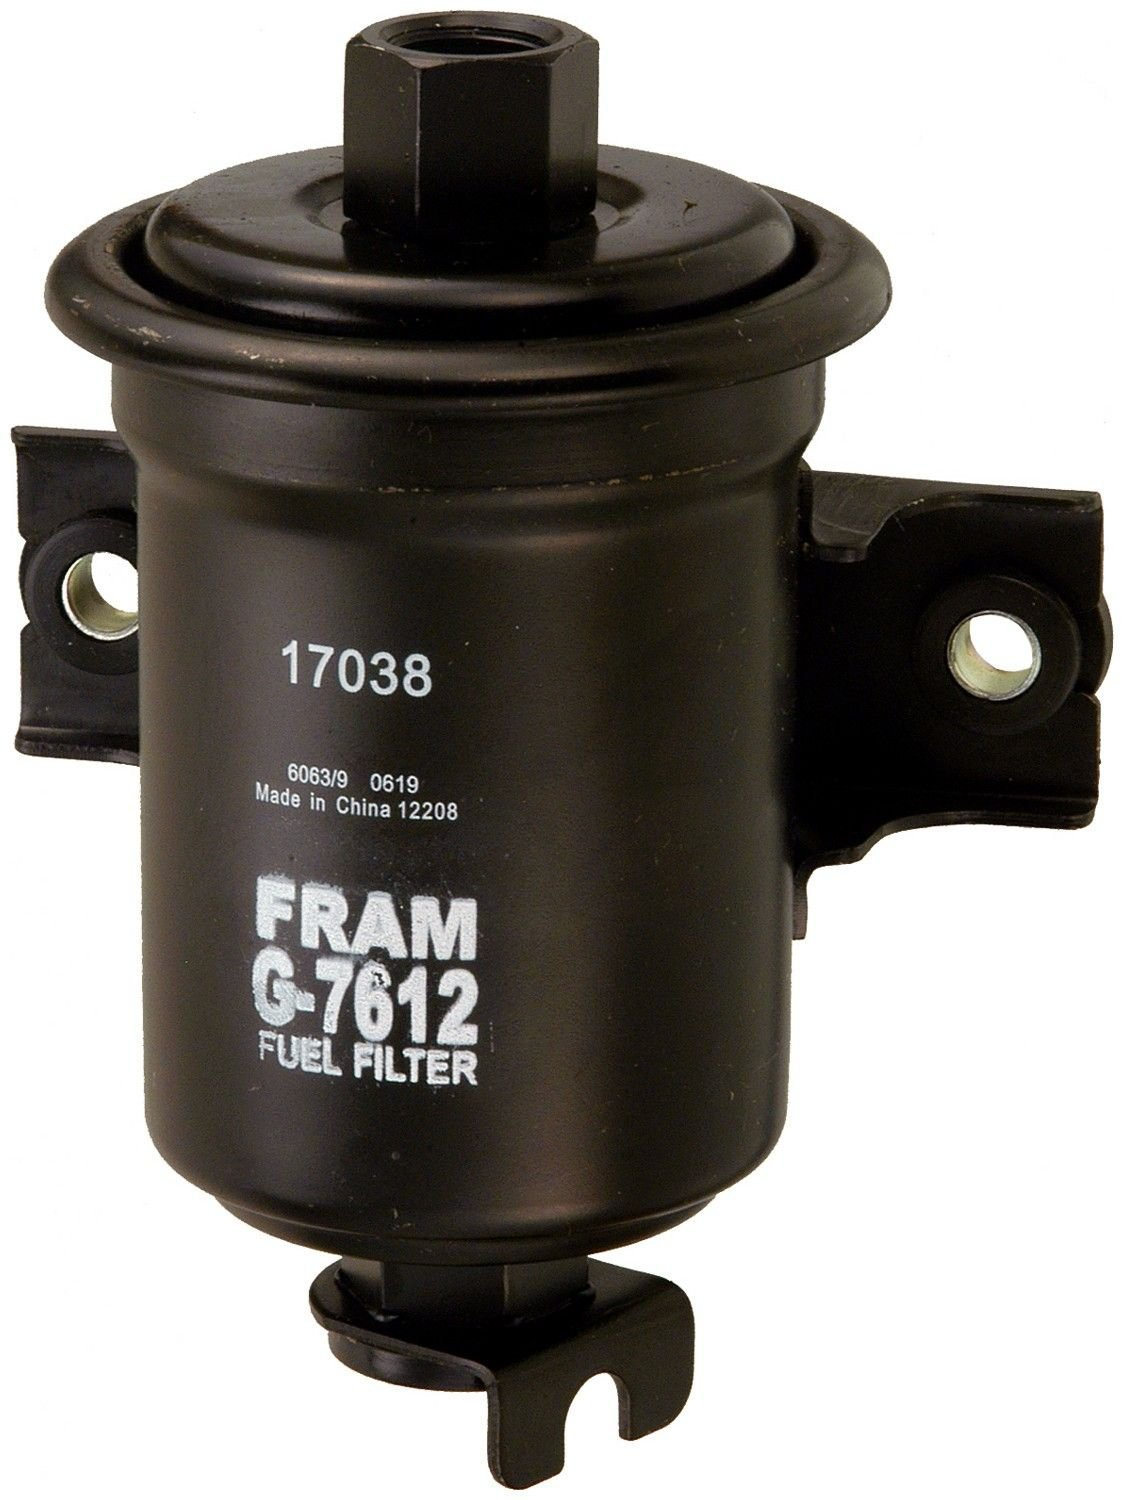 Toyota Corolla Fuel Filter Replacement Beck Arnley Fram Genuine 2005 Location 1993 4 Cyl 16l G7612 In Line